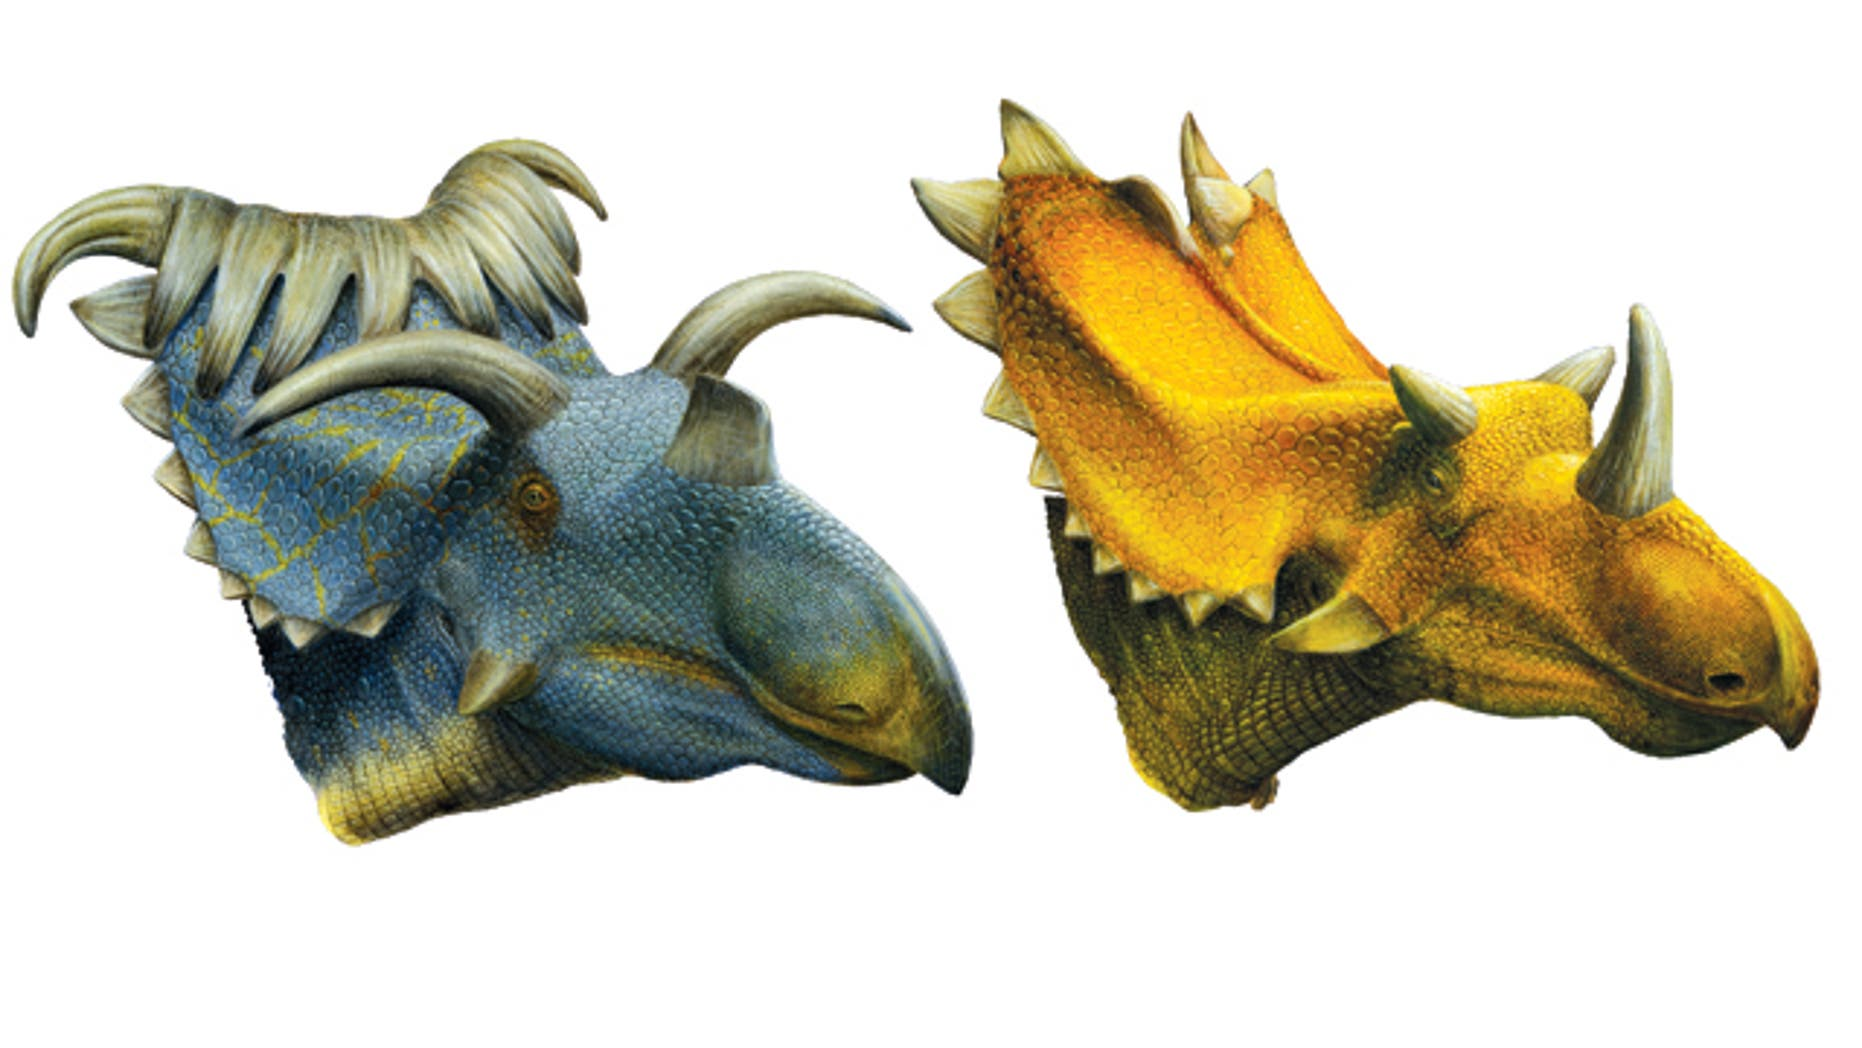 A bizarre dinosaur with 15 horns (at left) is one of two new close relatives of Triceratops that scientists unearthed in southern Utah from lands once part of a now-lost continent.